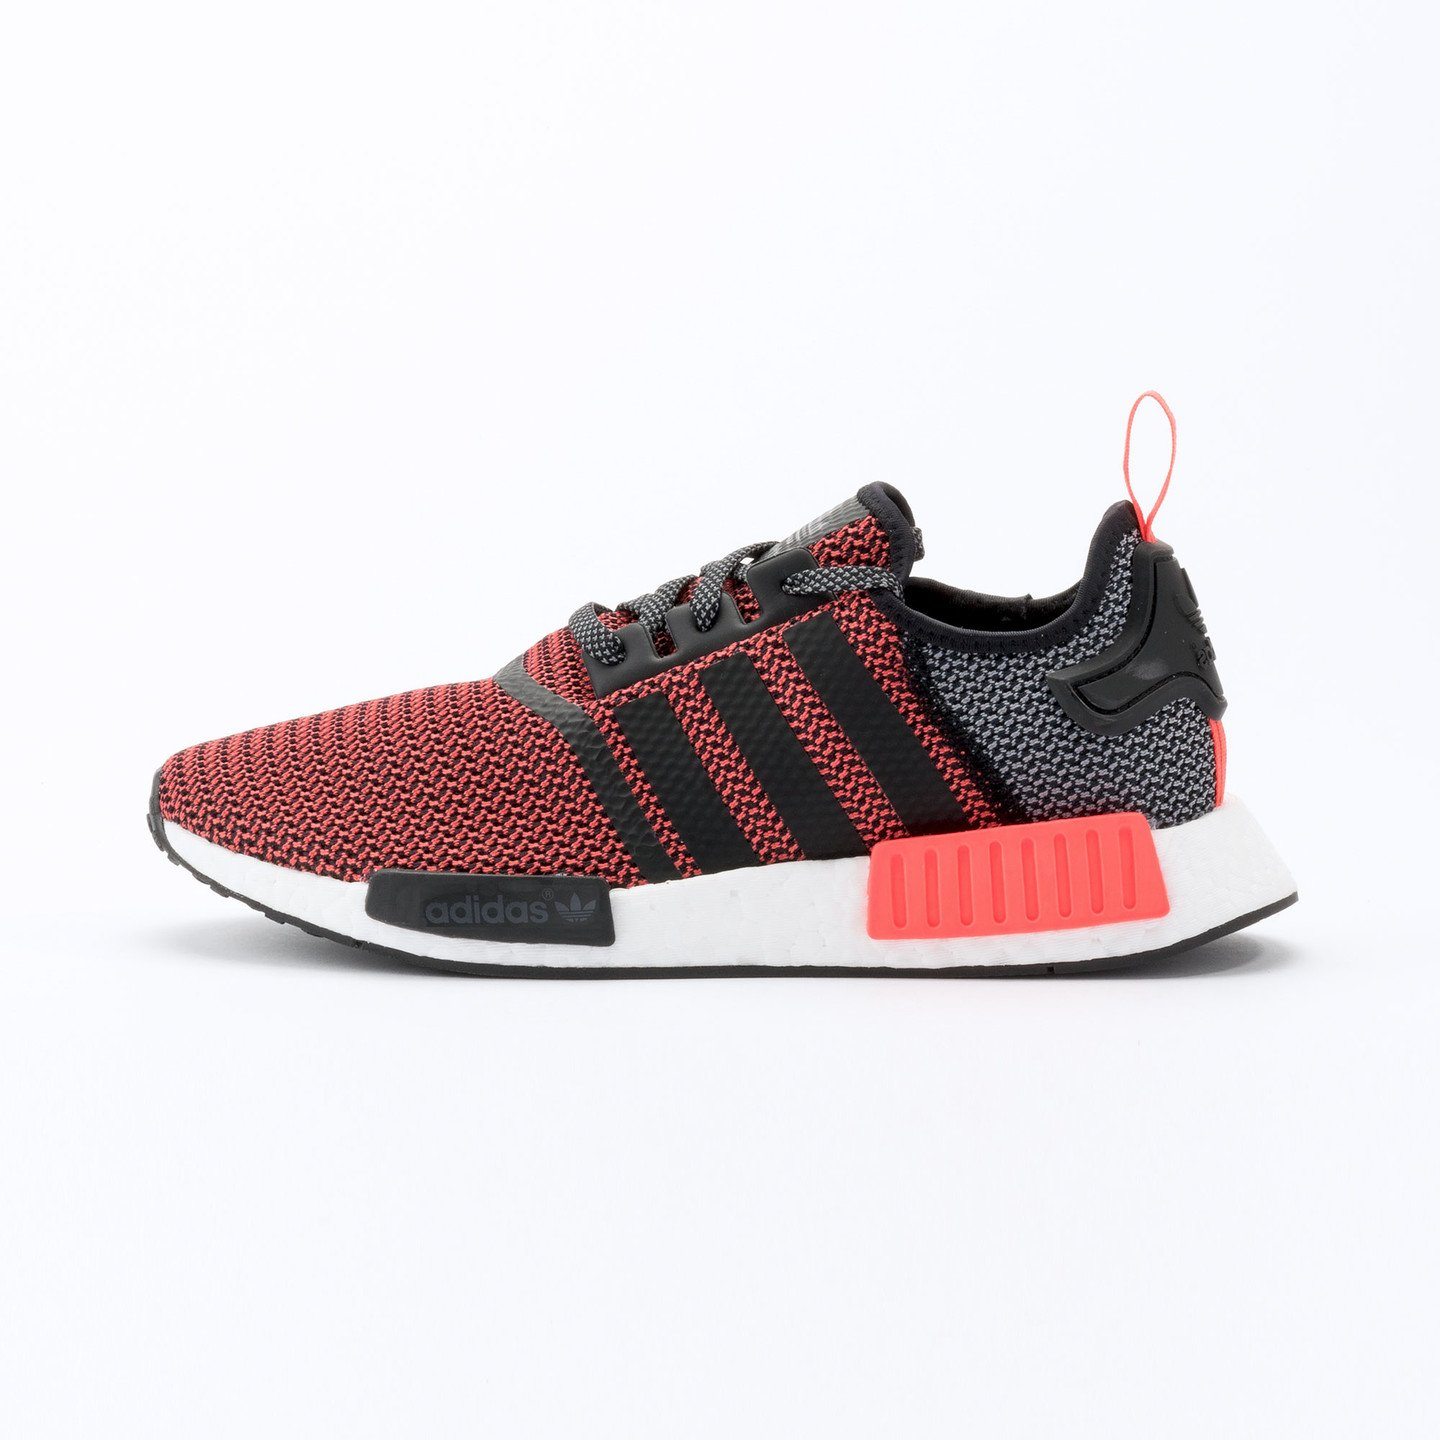 adidas nmd r1 runner lush red core black s79158. Black Bedroom Furniture Sets. Home Design Ideas